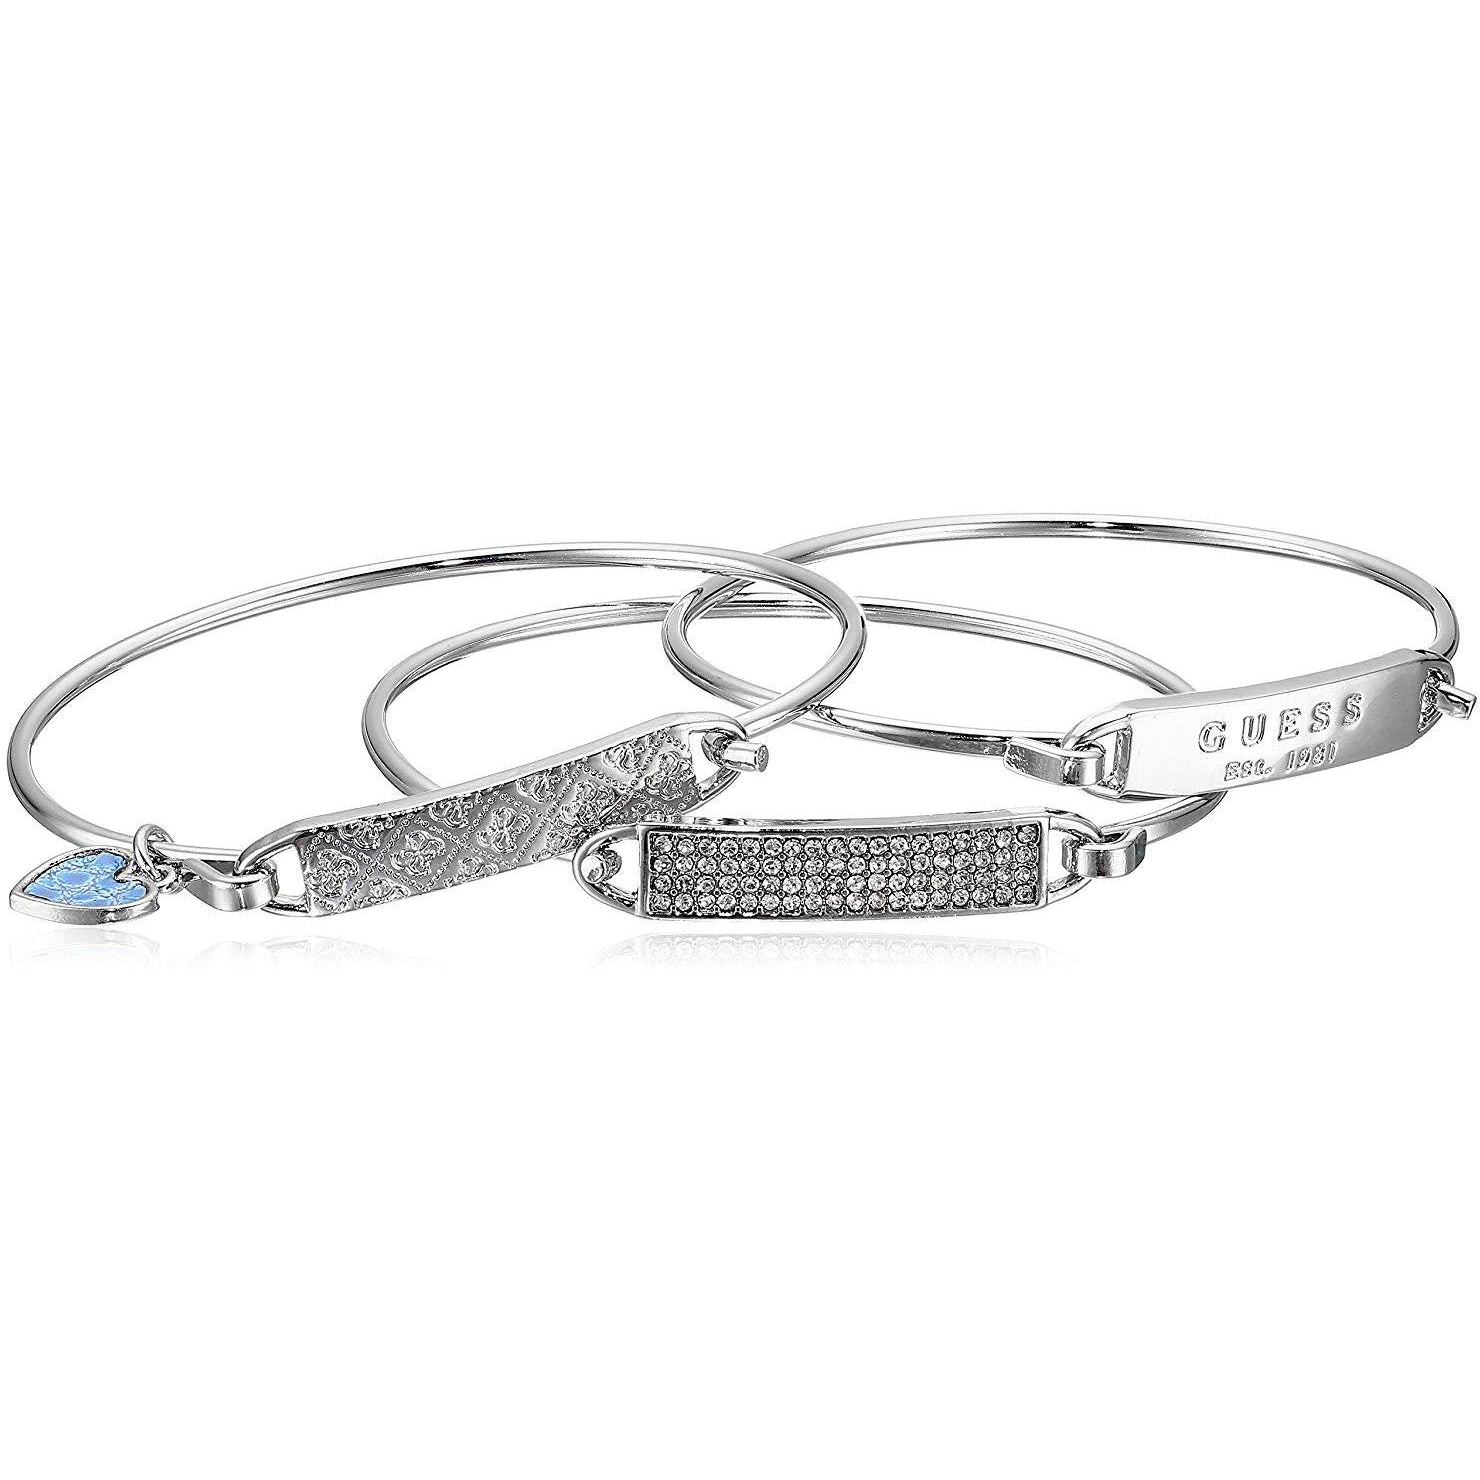 Guess 3 Piece Tension ID Silver Bangle  Bracelet